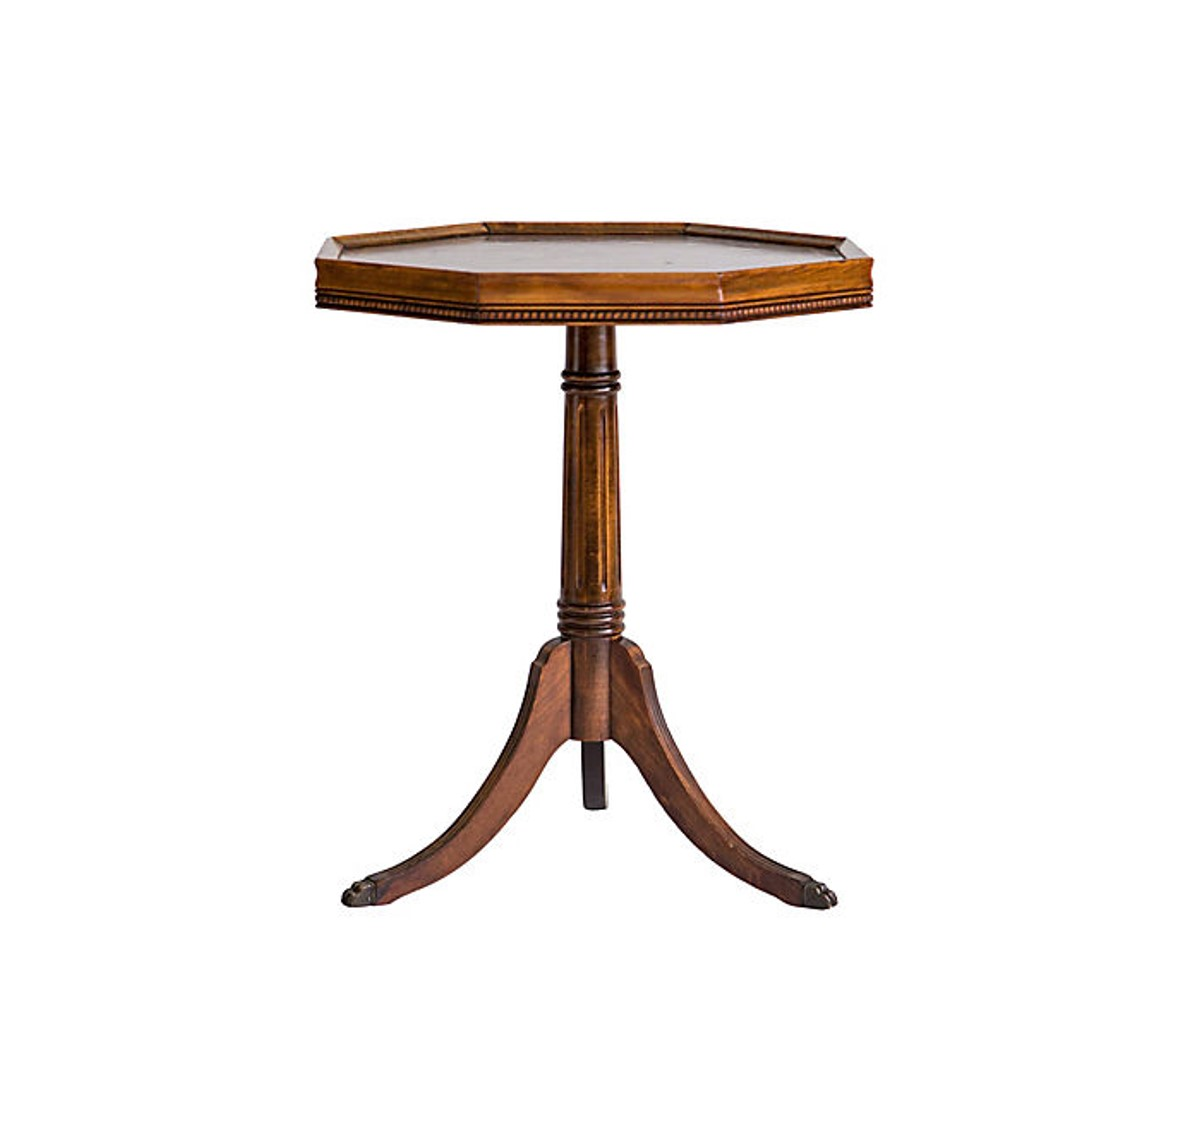 leather top pedestal accent table janney collection wood silver metal and glass coffee pier one imports rugs counter dining bedside lamps cymbal stand decorative inch round covers